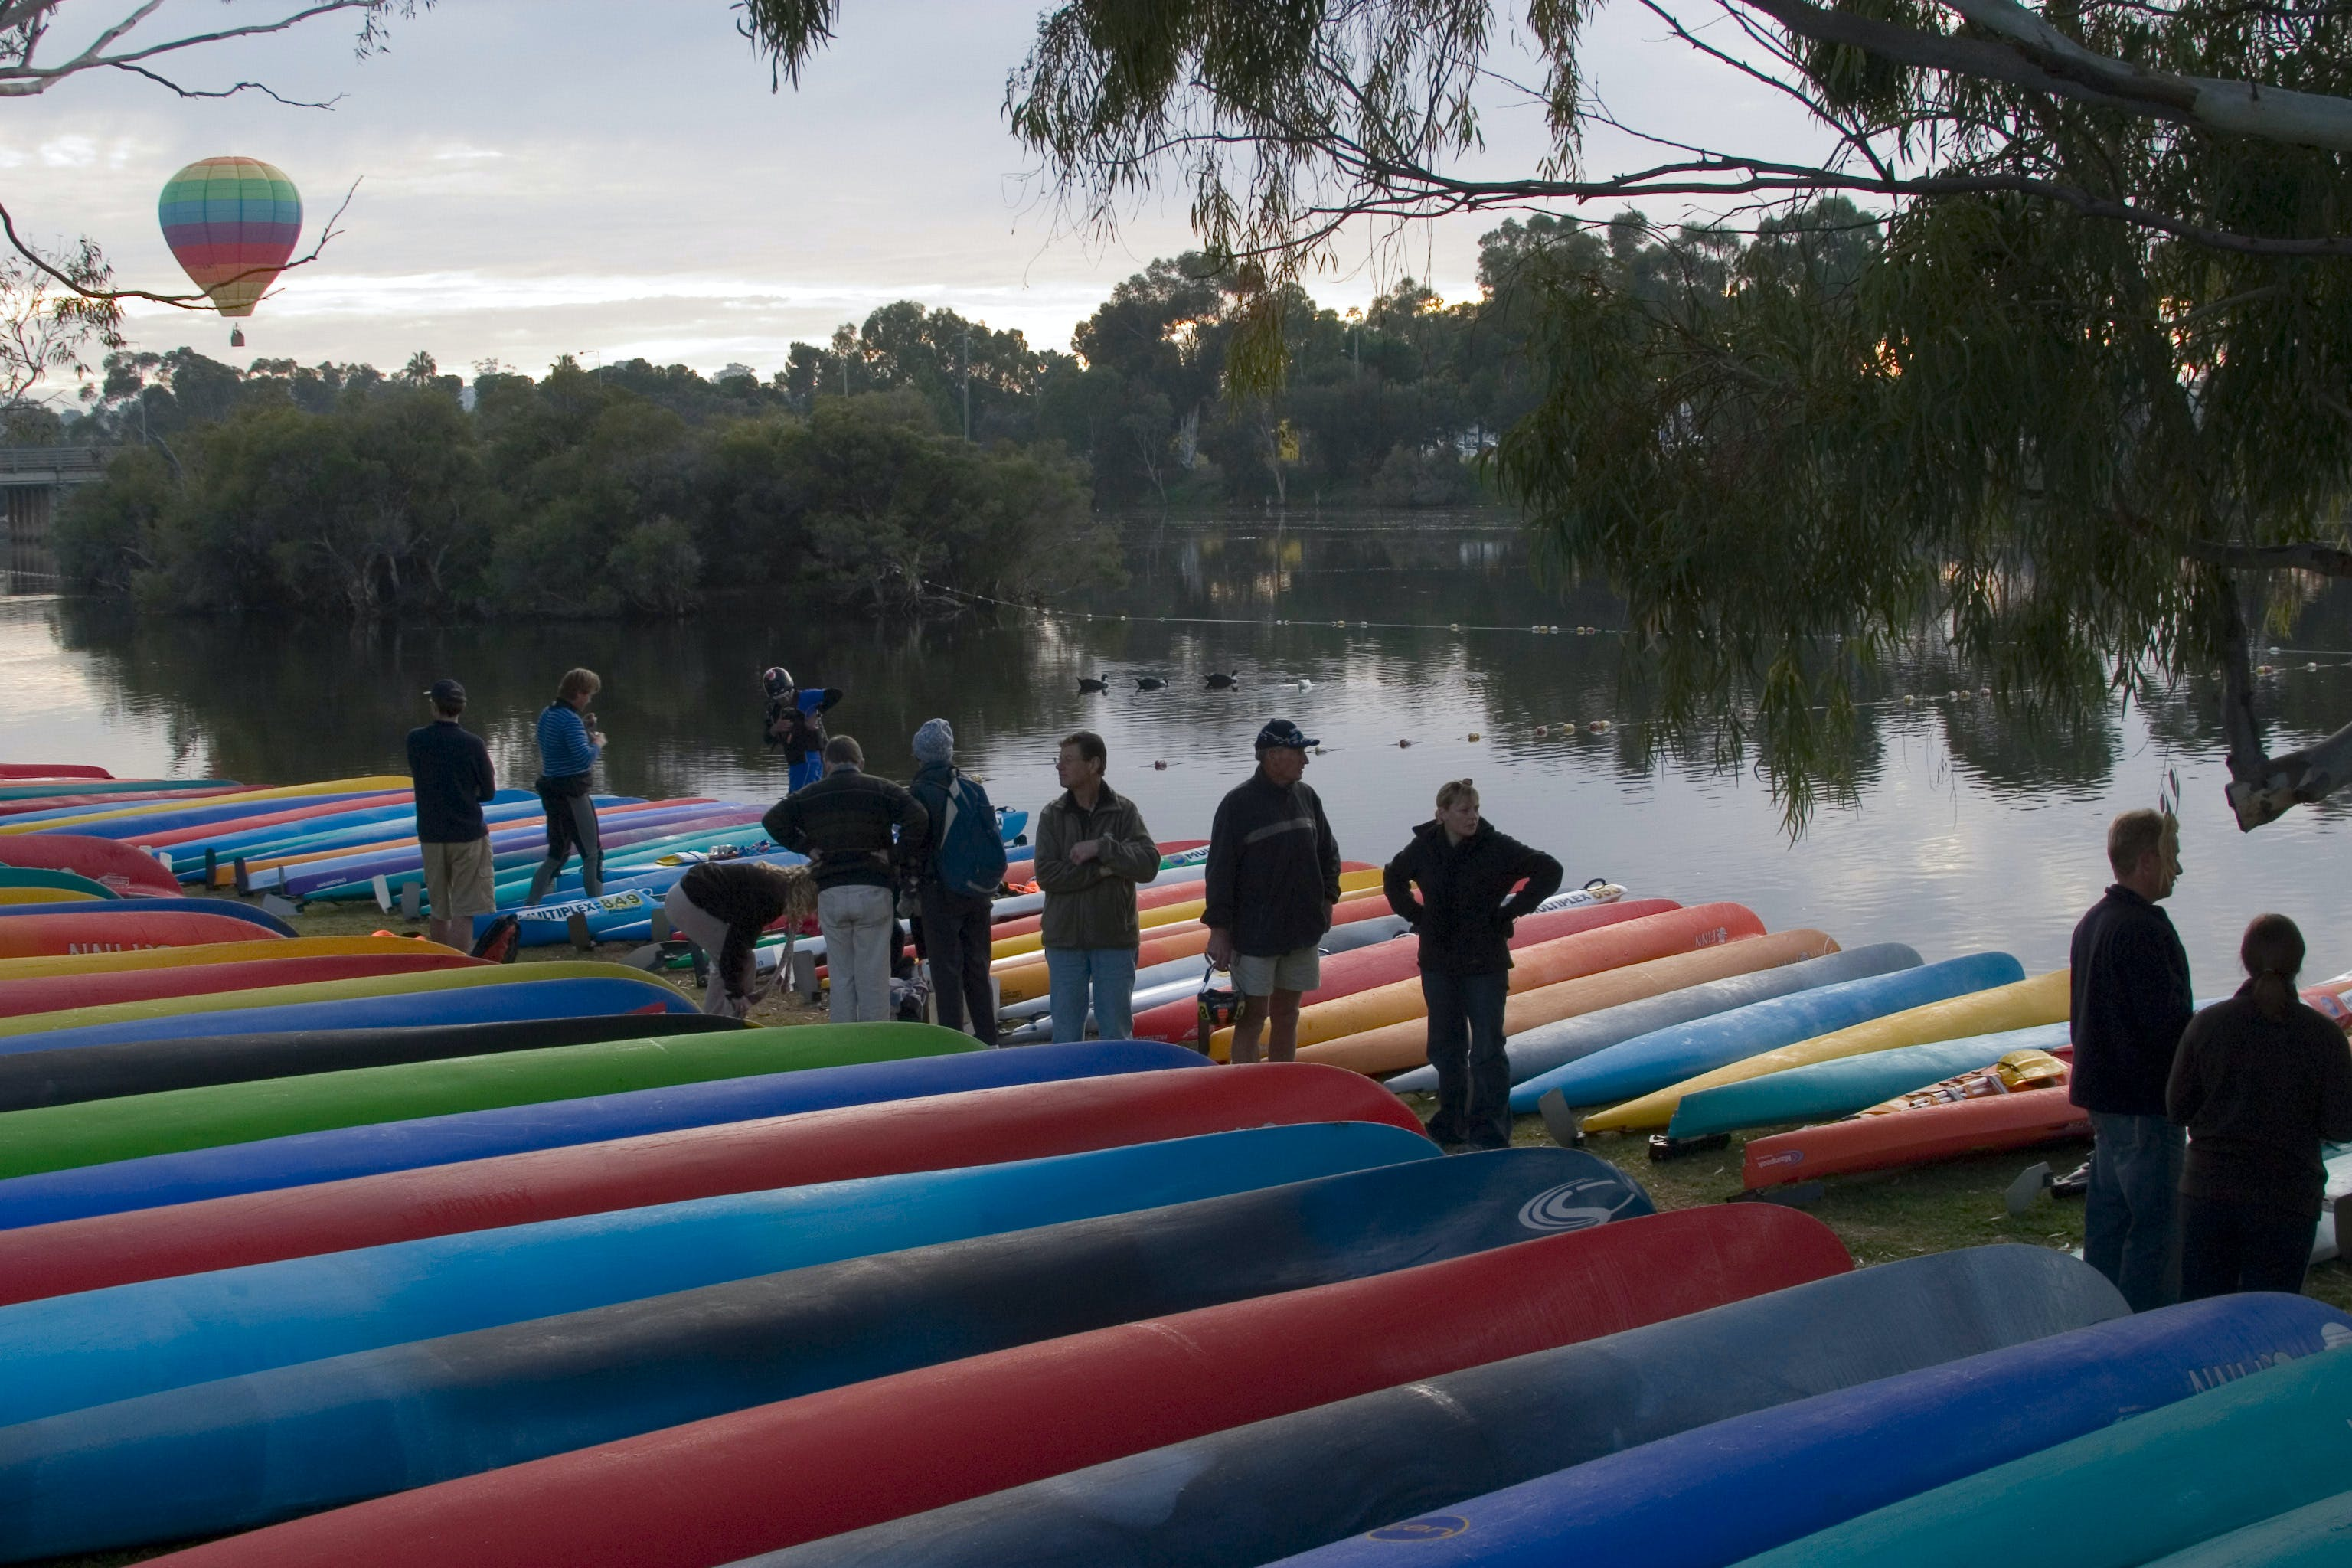 Avon Descent - ACT Tourism